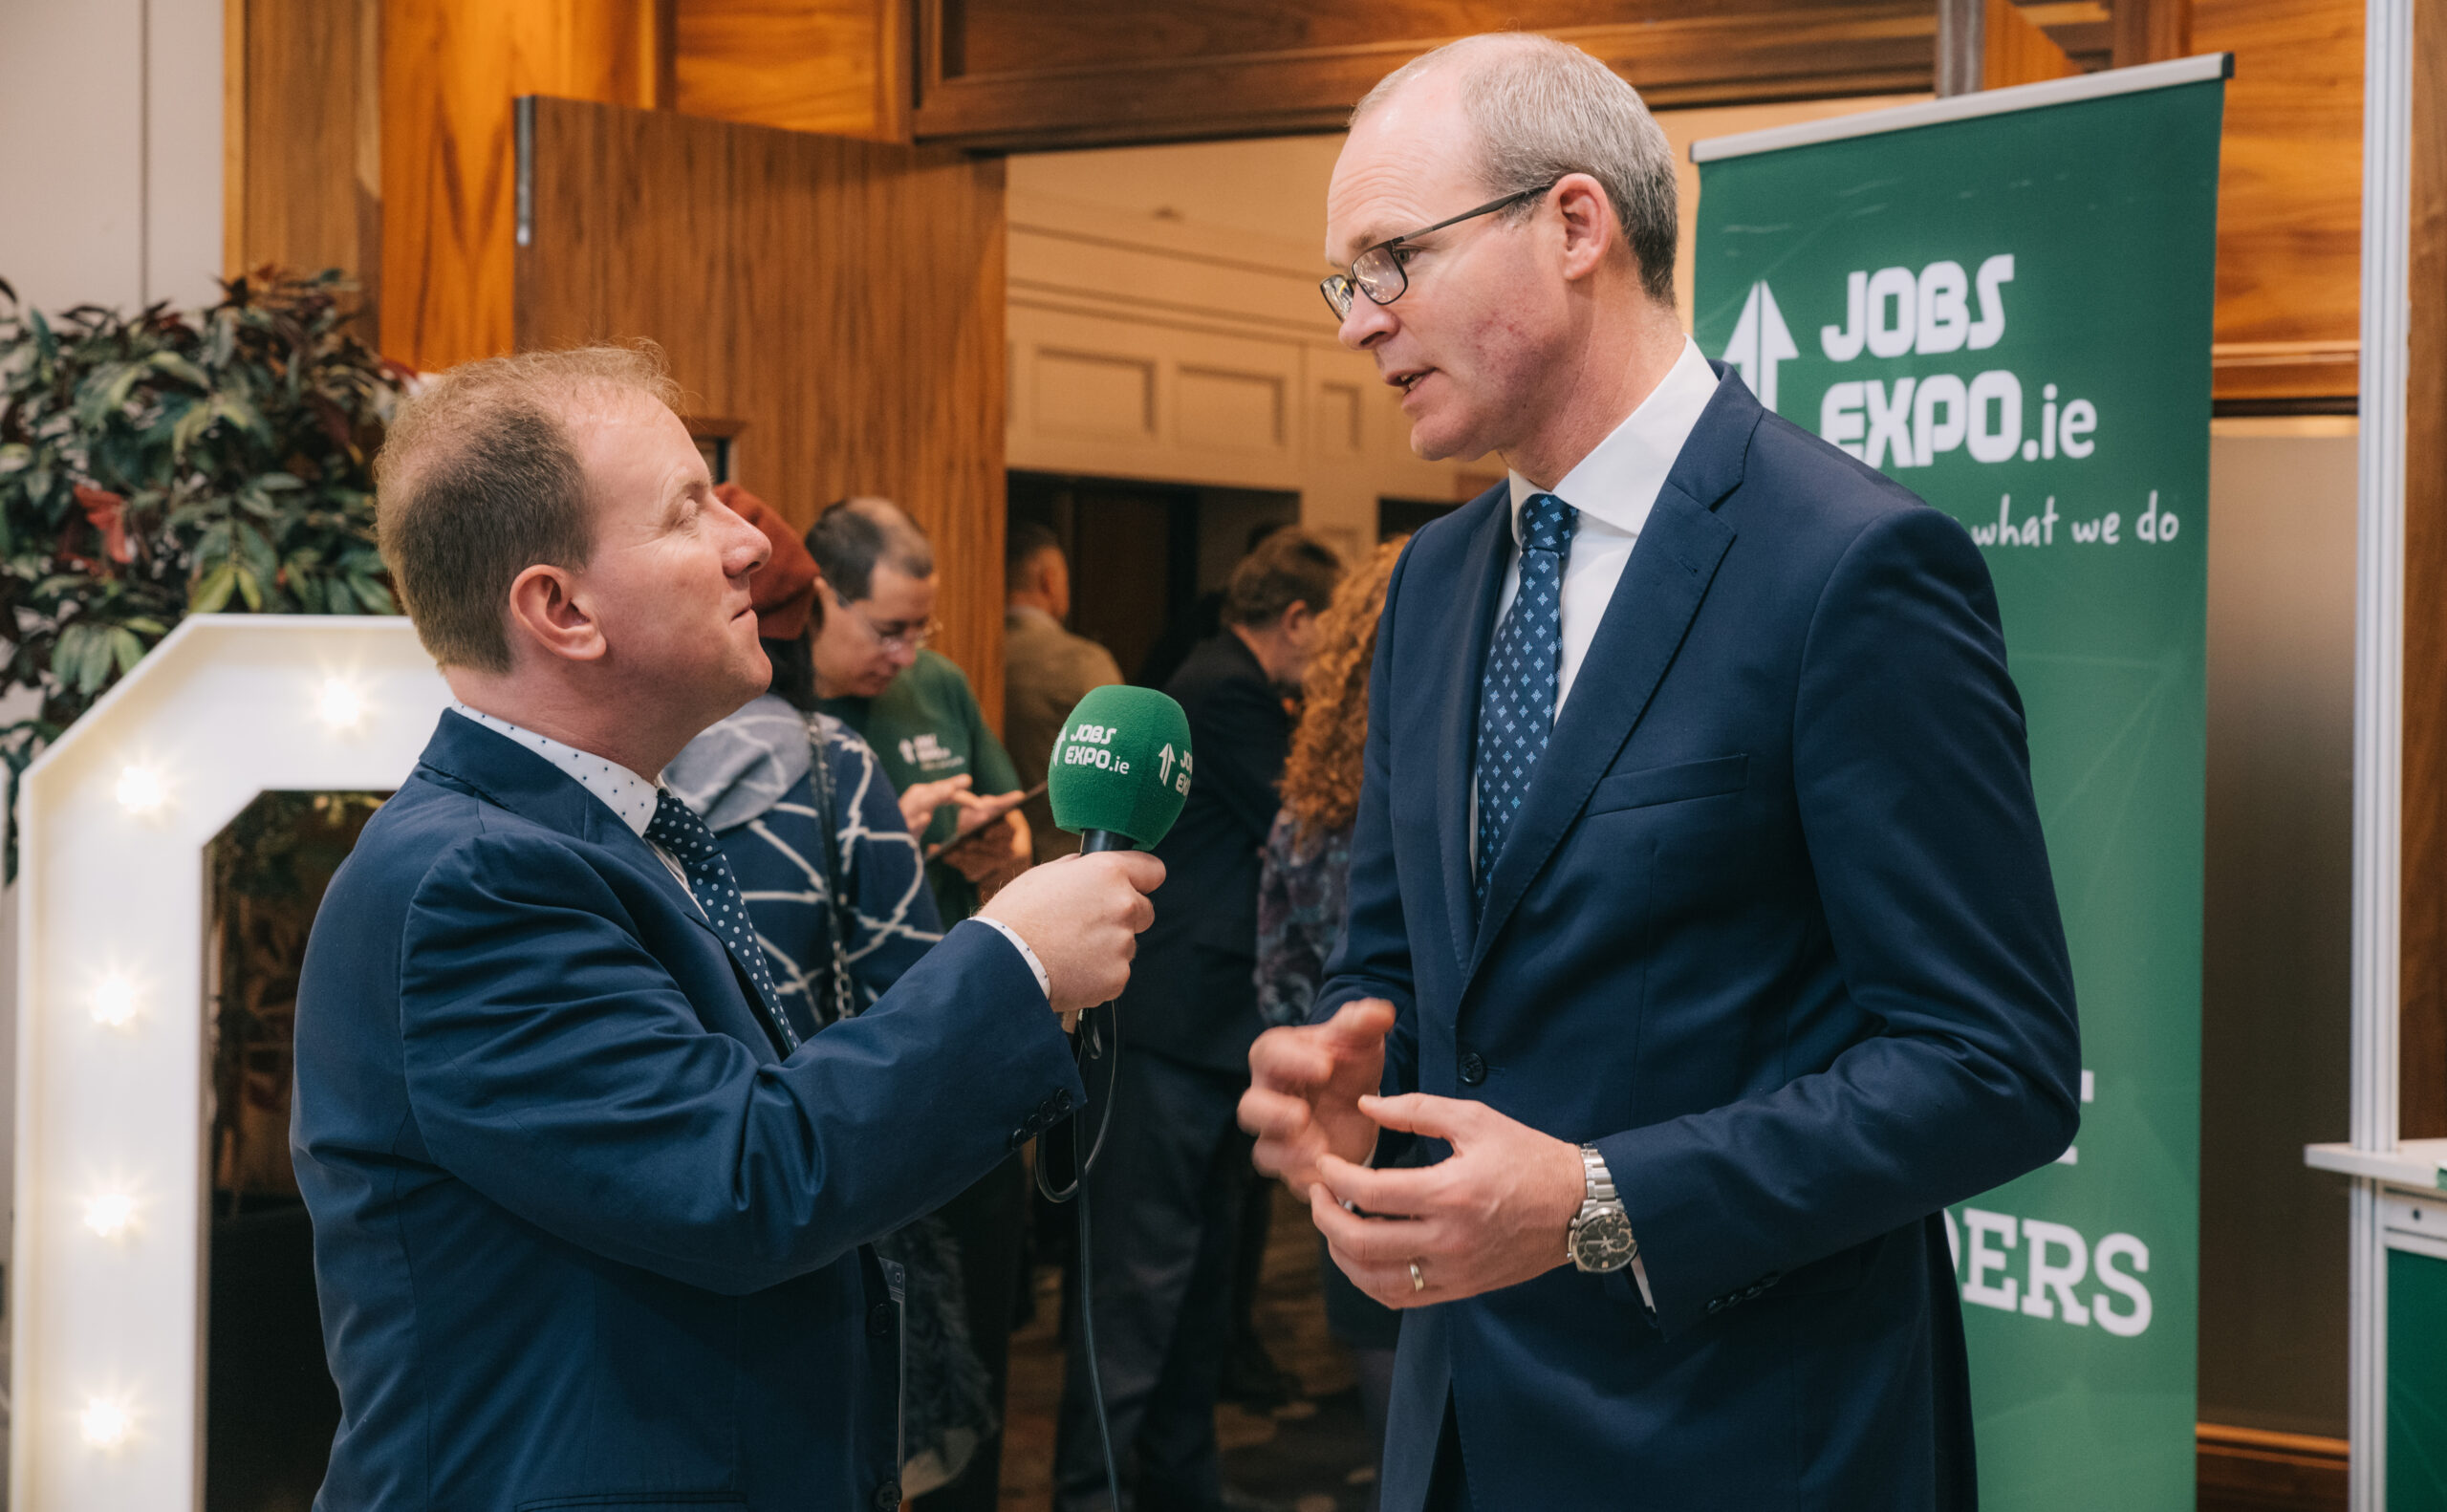 Tanaiste and Minister for Foreign Affairs, Simon Coveney TD, meets attendees at Jobs Expo Cork